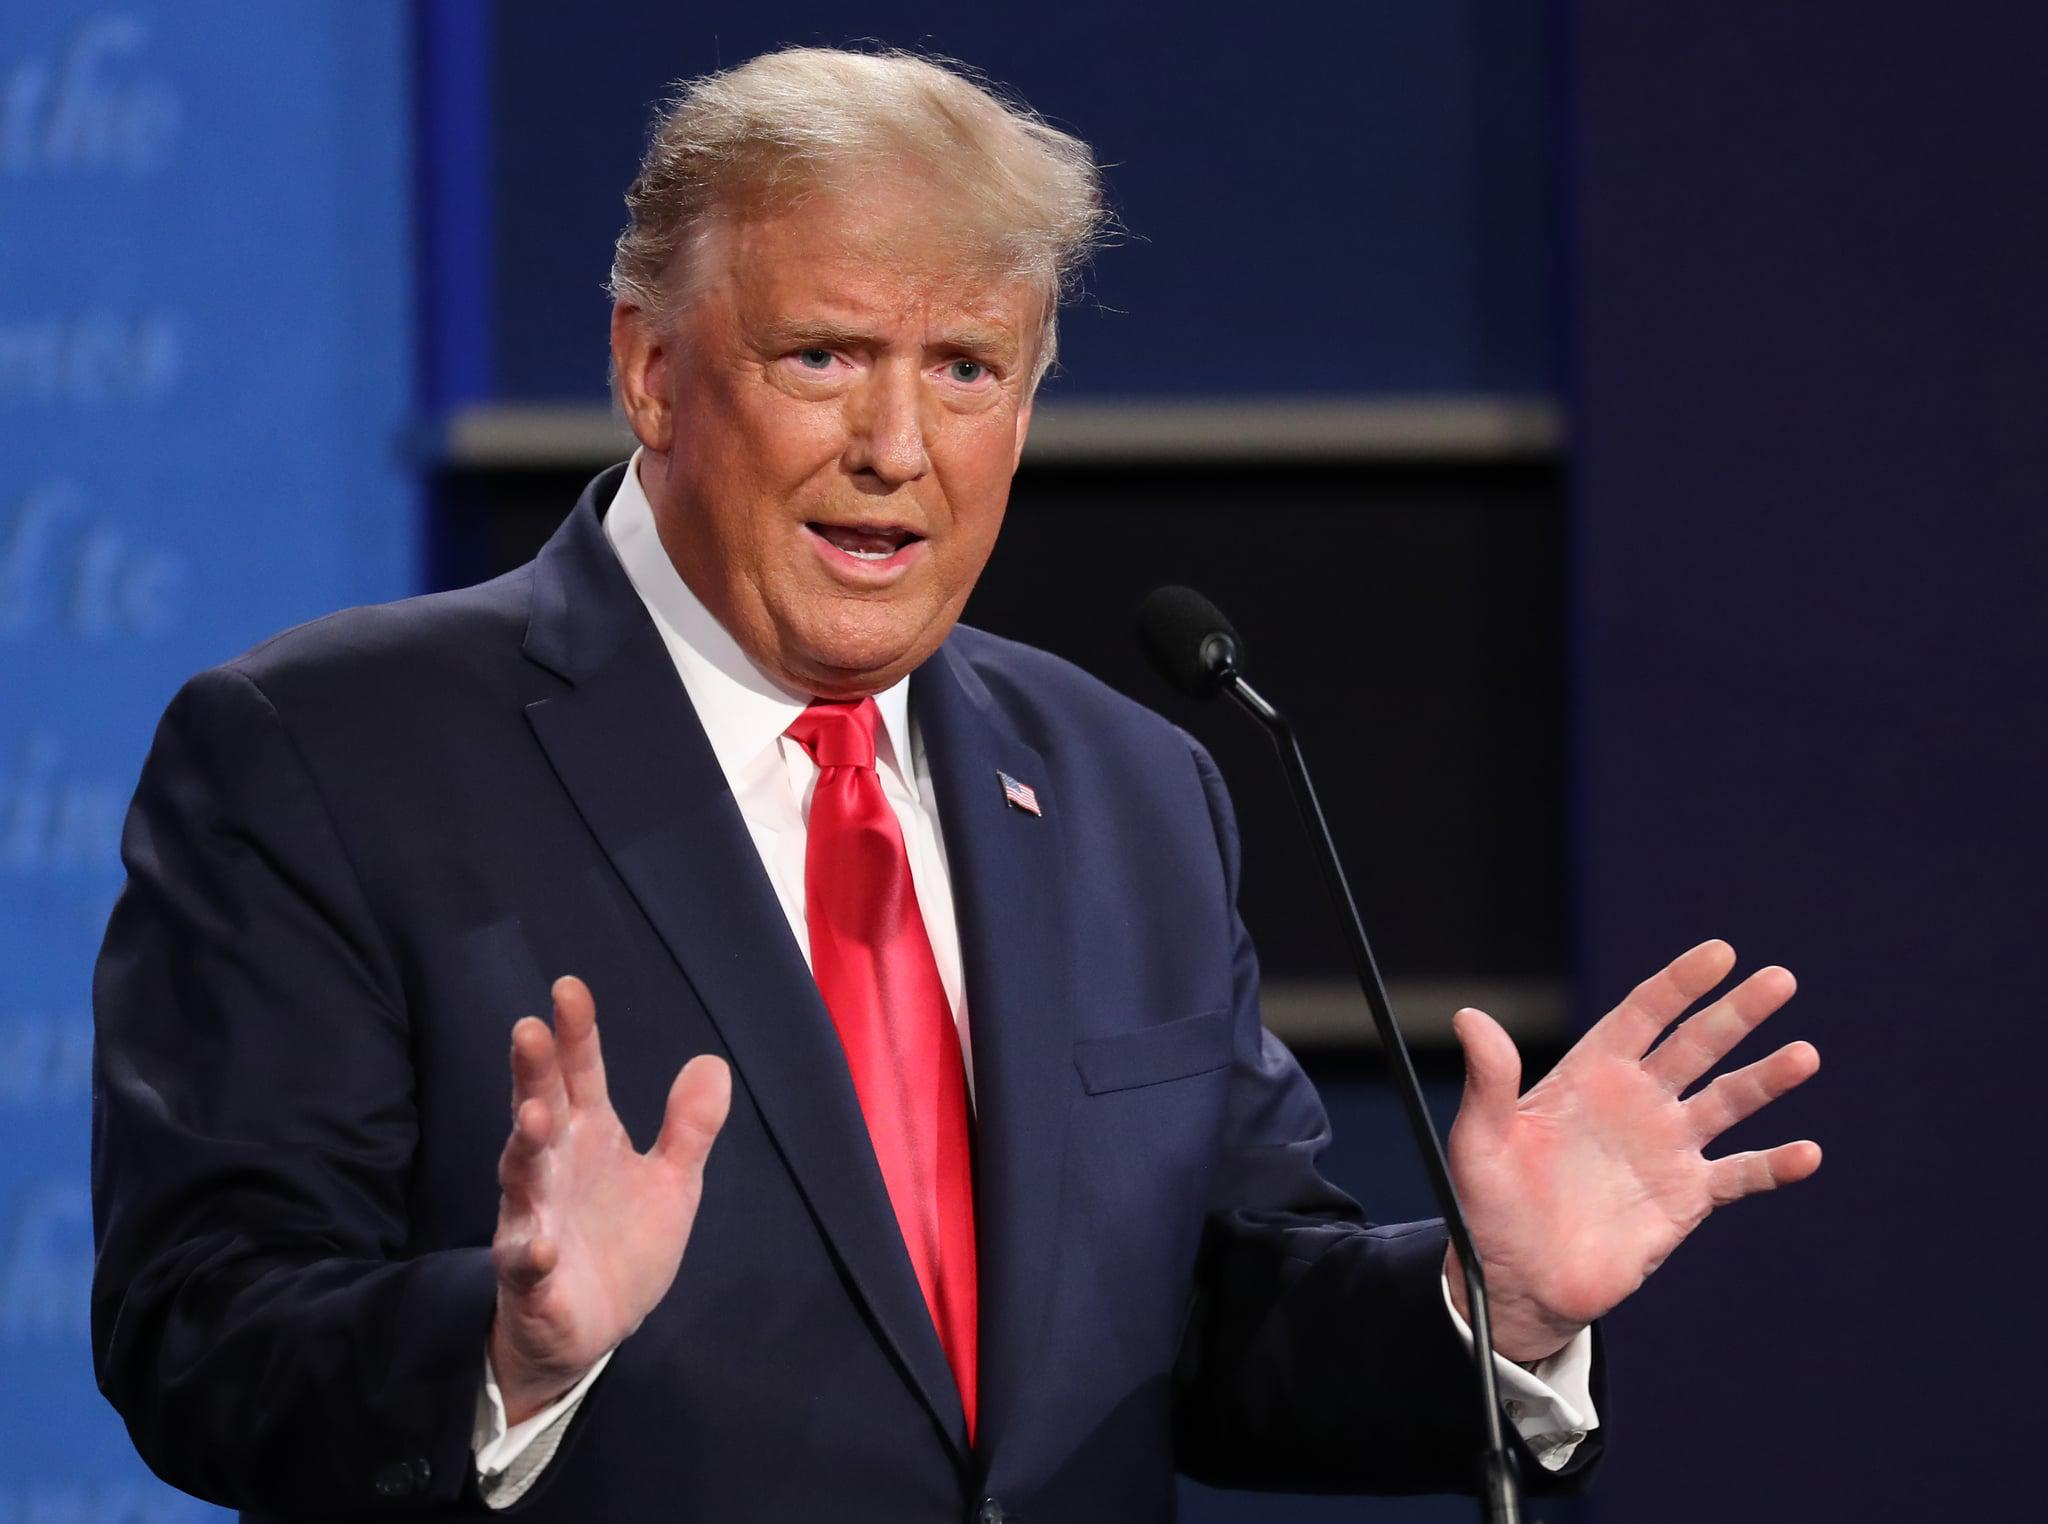 NASHVILLE, TENNESSEE - OCTOBER 22: U.S. President Donald Trump participates in the final presidential debate against Democratic presidential nominee Joe Biden at Belmont University on October 22, 2020 in Nashville, Tennessee. This is the last debate between the two candidates before the election on November 3. (Photo by Chip Somodevilla/Getty Images)